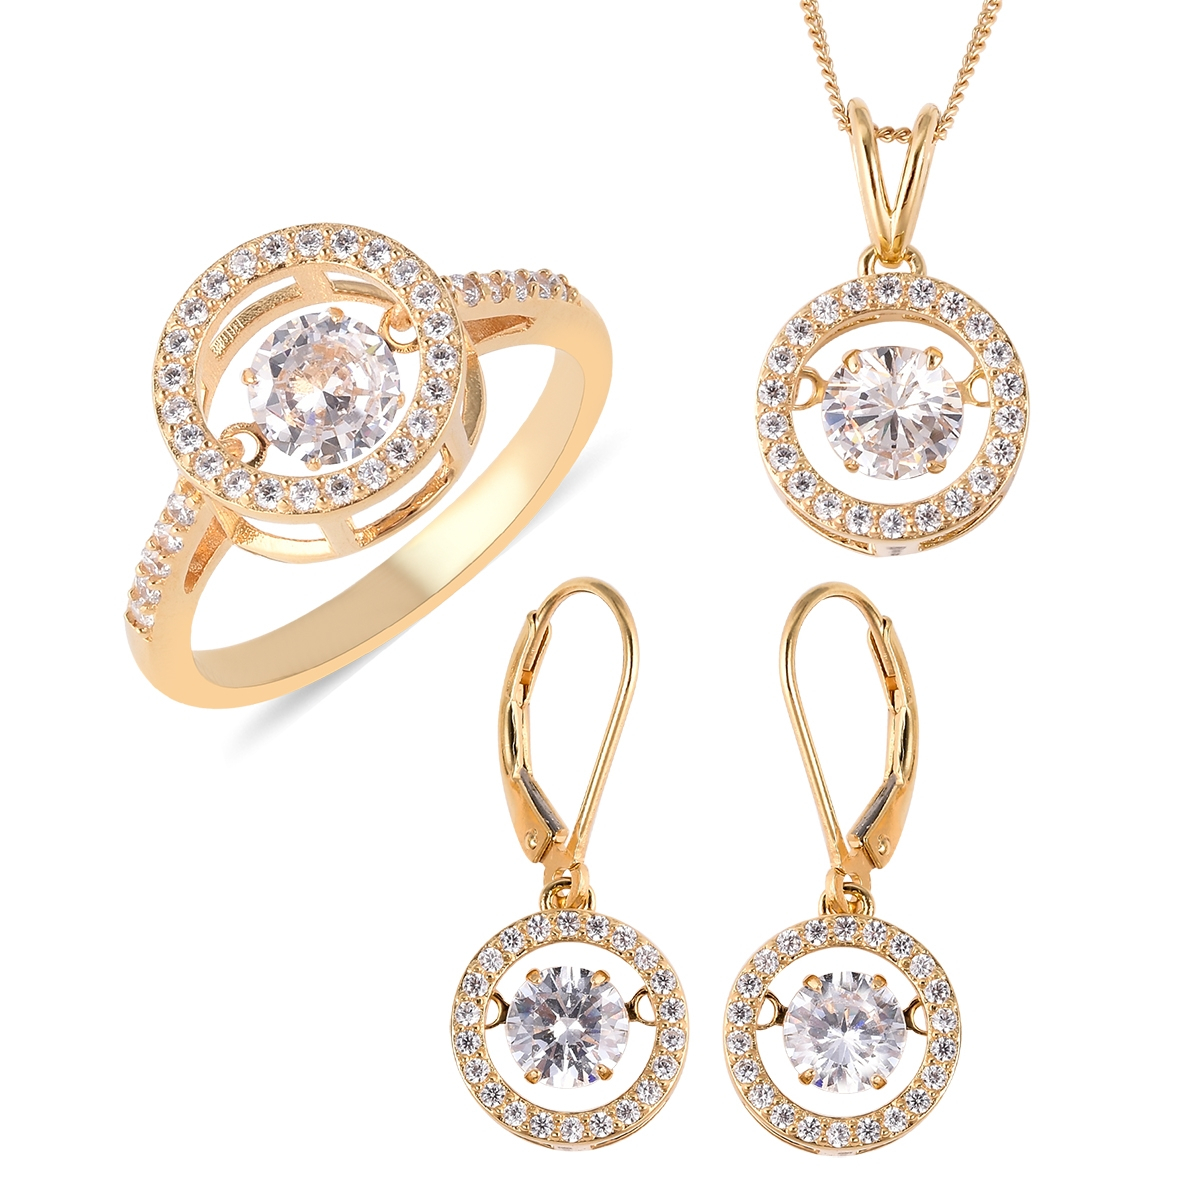 Lustro Stella Dancing Cz Halo Set Earrings, Ring (Size 8) And Pendant  Necklace (18 In) In Vermeil Yg Over Sterling Silver (Avg. 11.25 G)  (View 18 of 25)